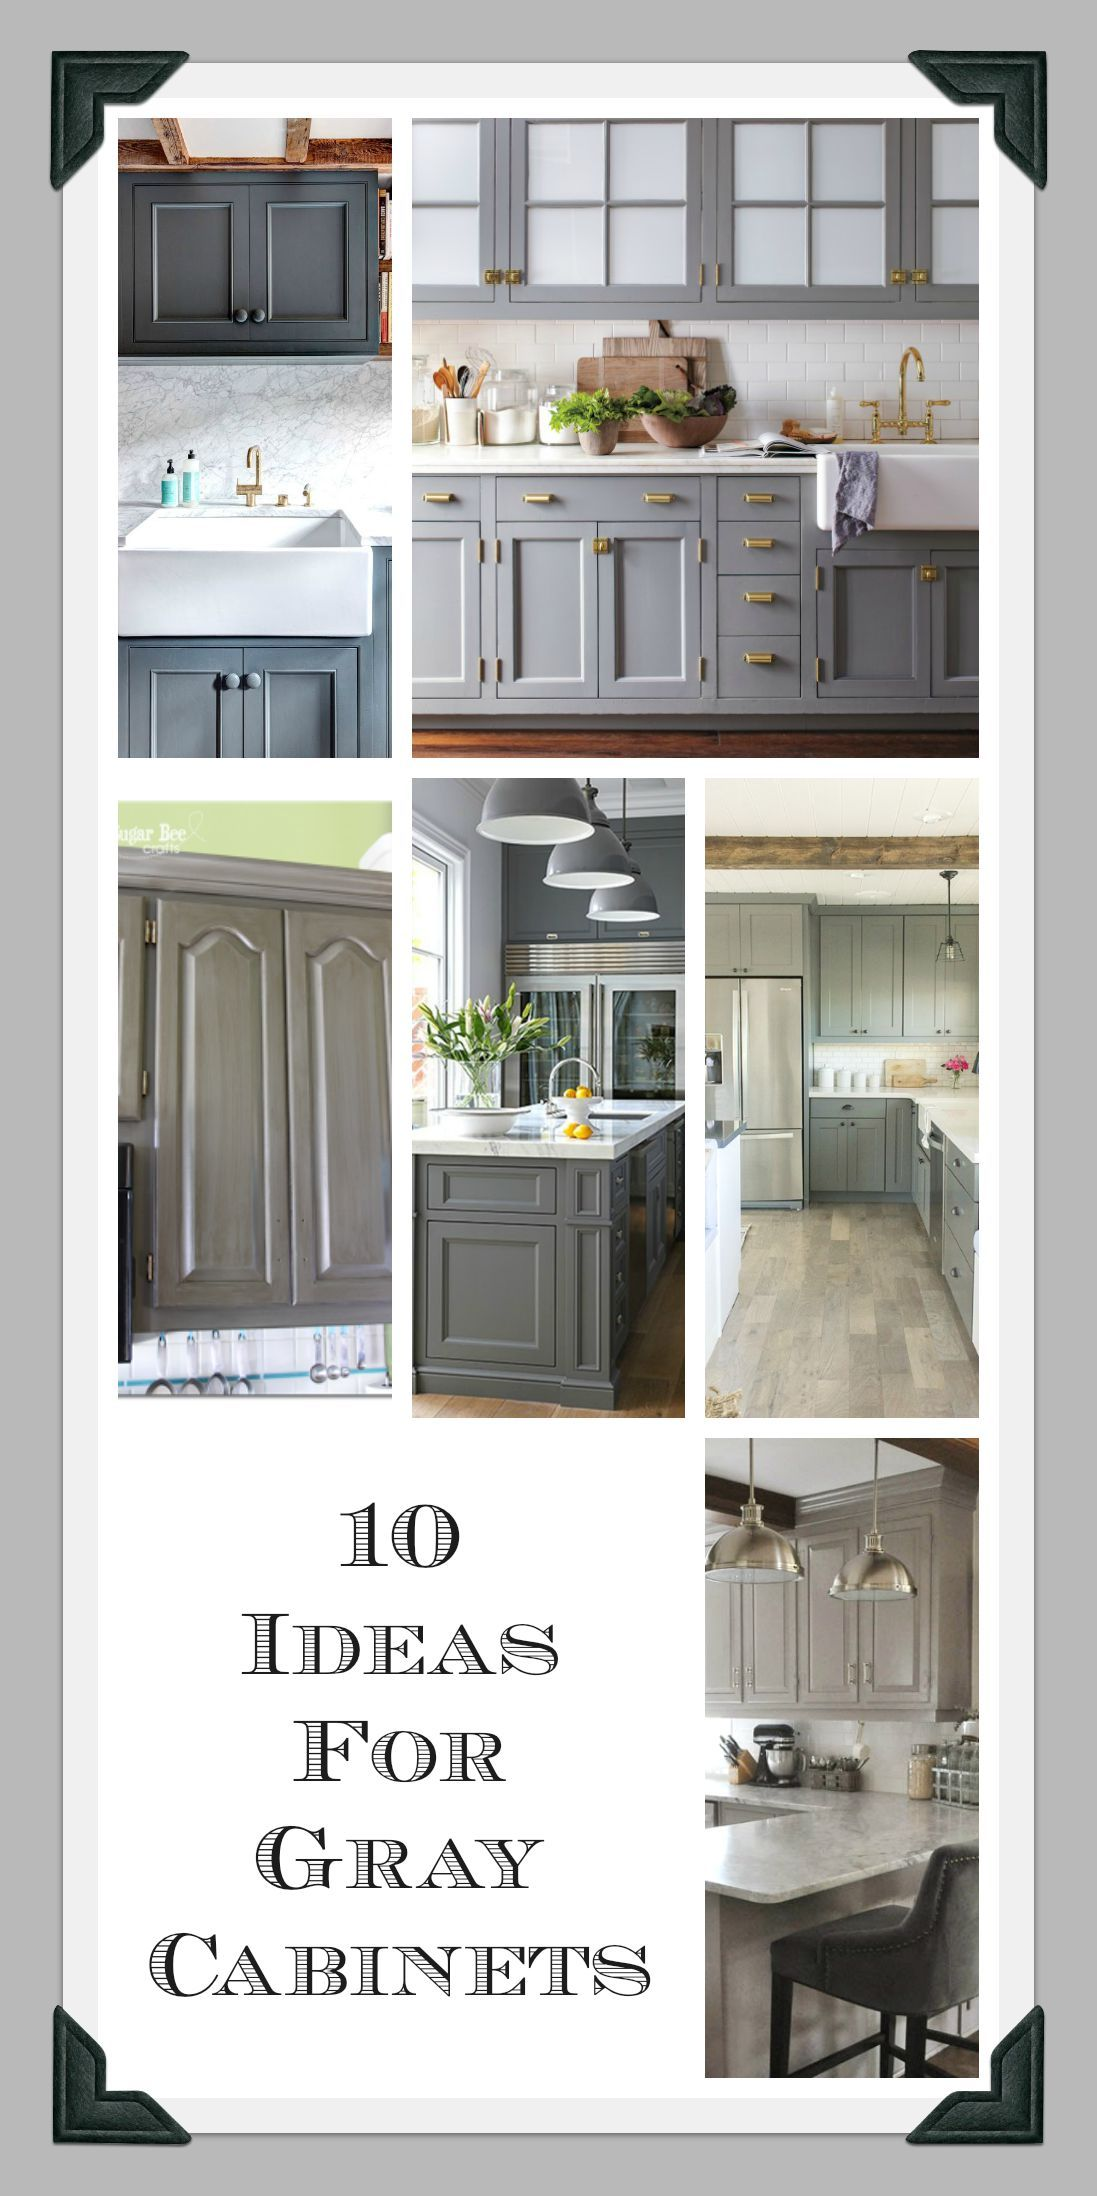 Iuve been obsessed with gray cabinets lately and canut wait to paint